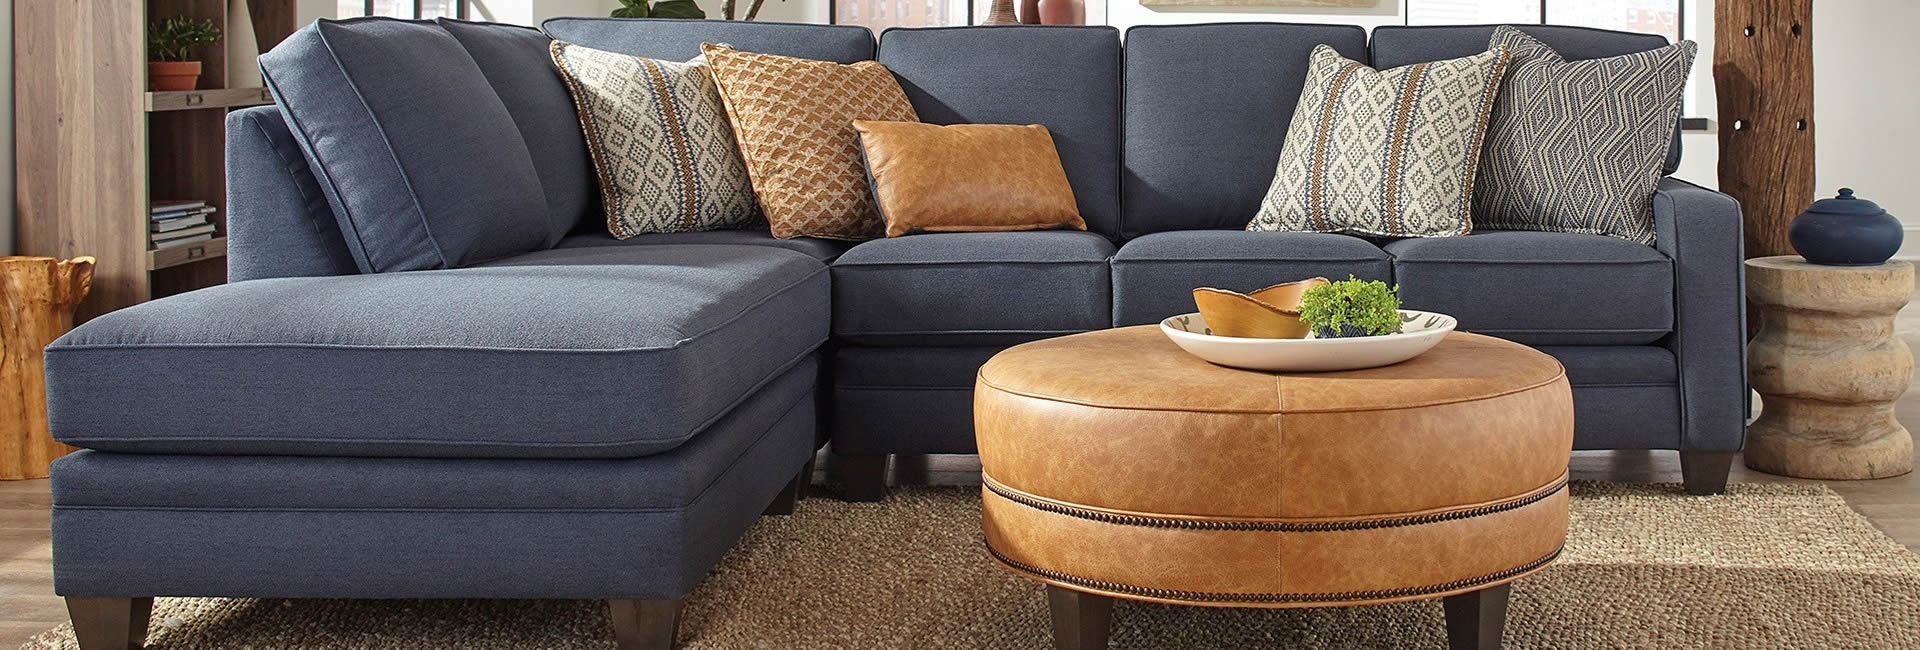 Couches Clearance